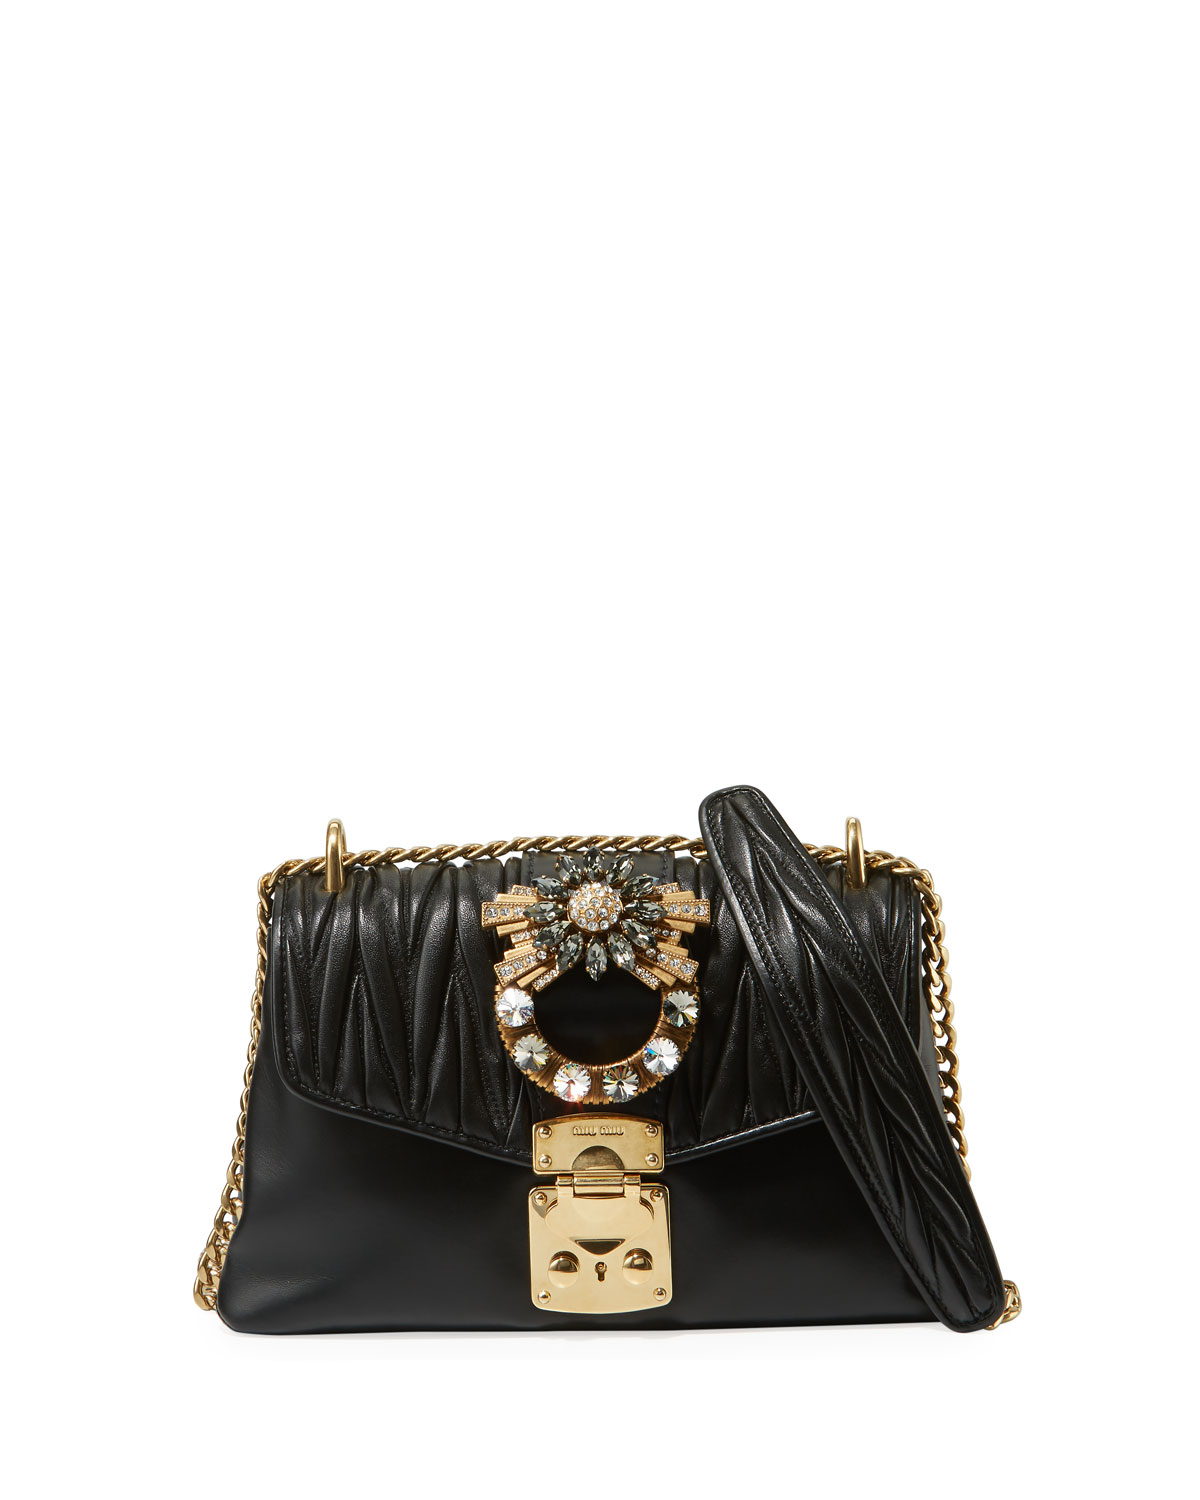 8a5bdeb7e8fd Miu Miu Coffer Jeweled Quilted Leather Shoulder Bag